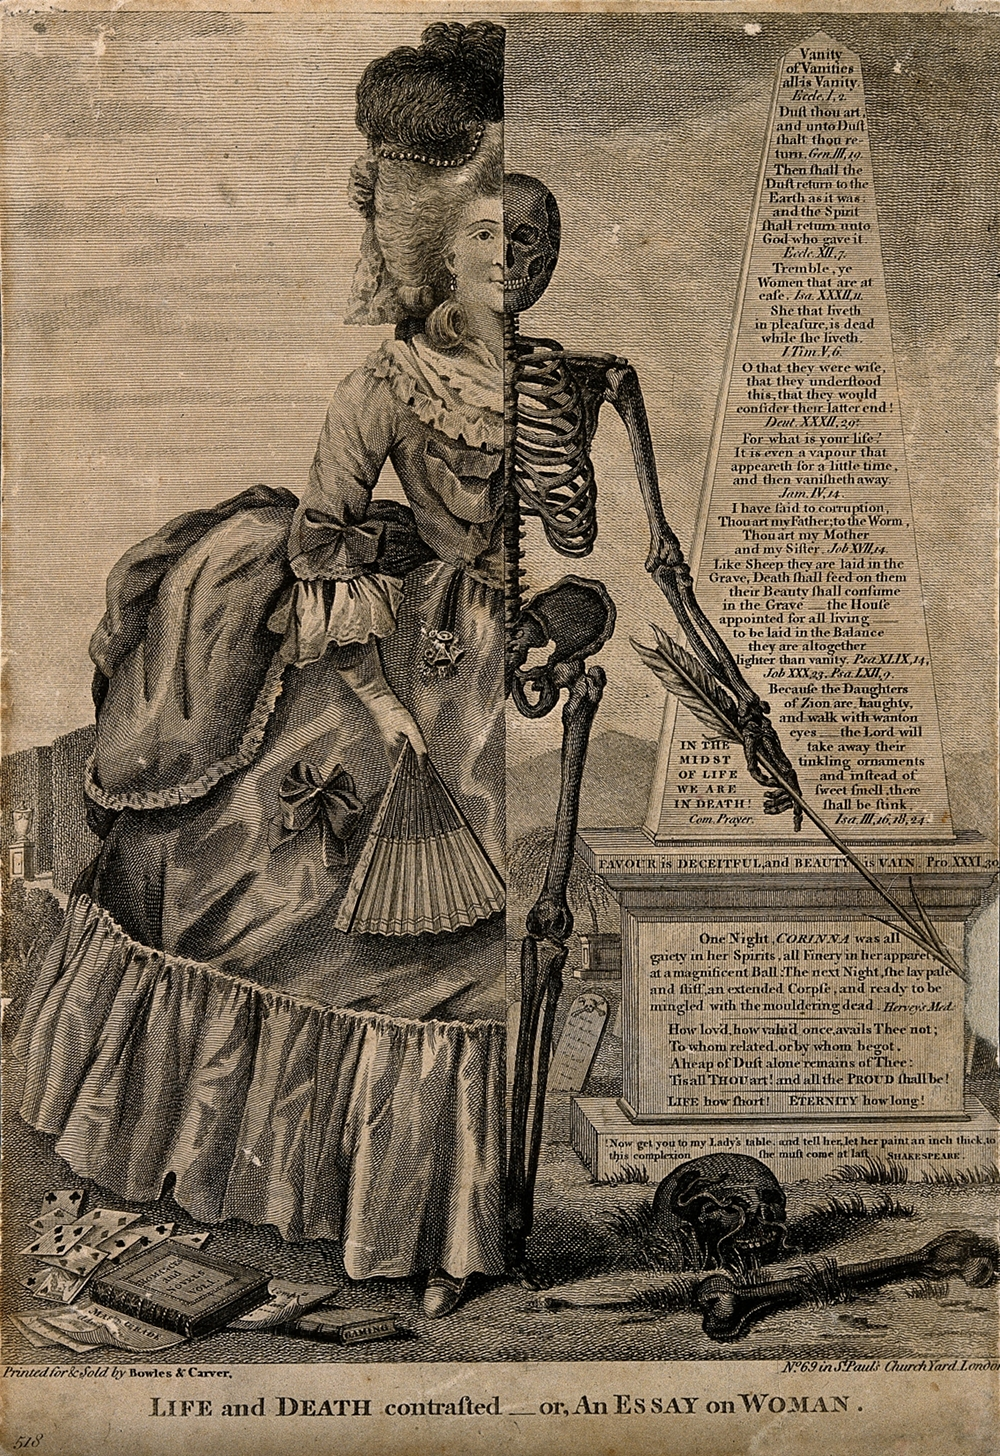 by Valentine Green (c. 1770); Wellcome Library via The Public Domain Review